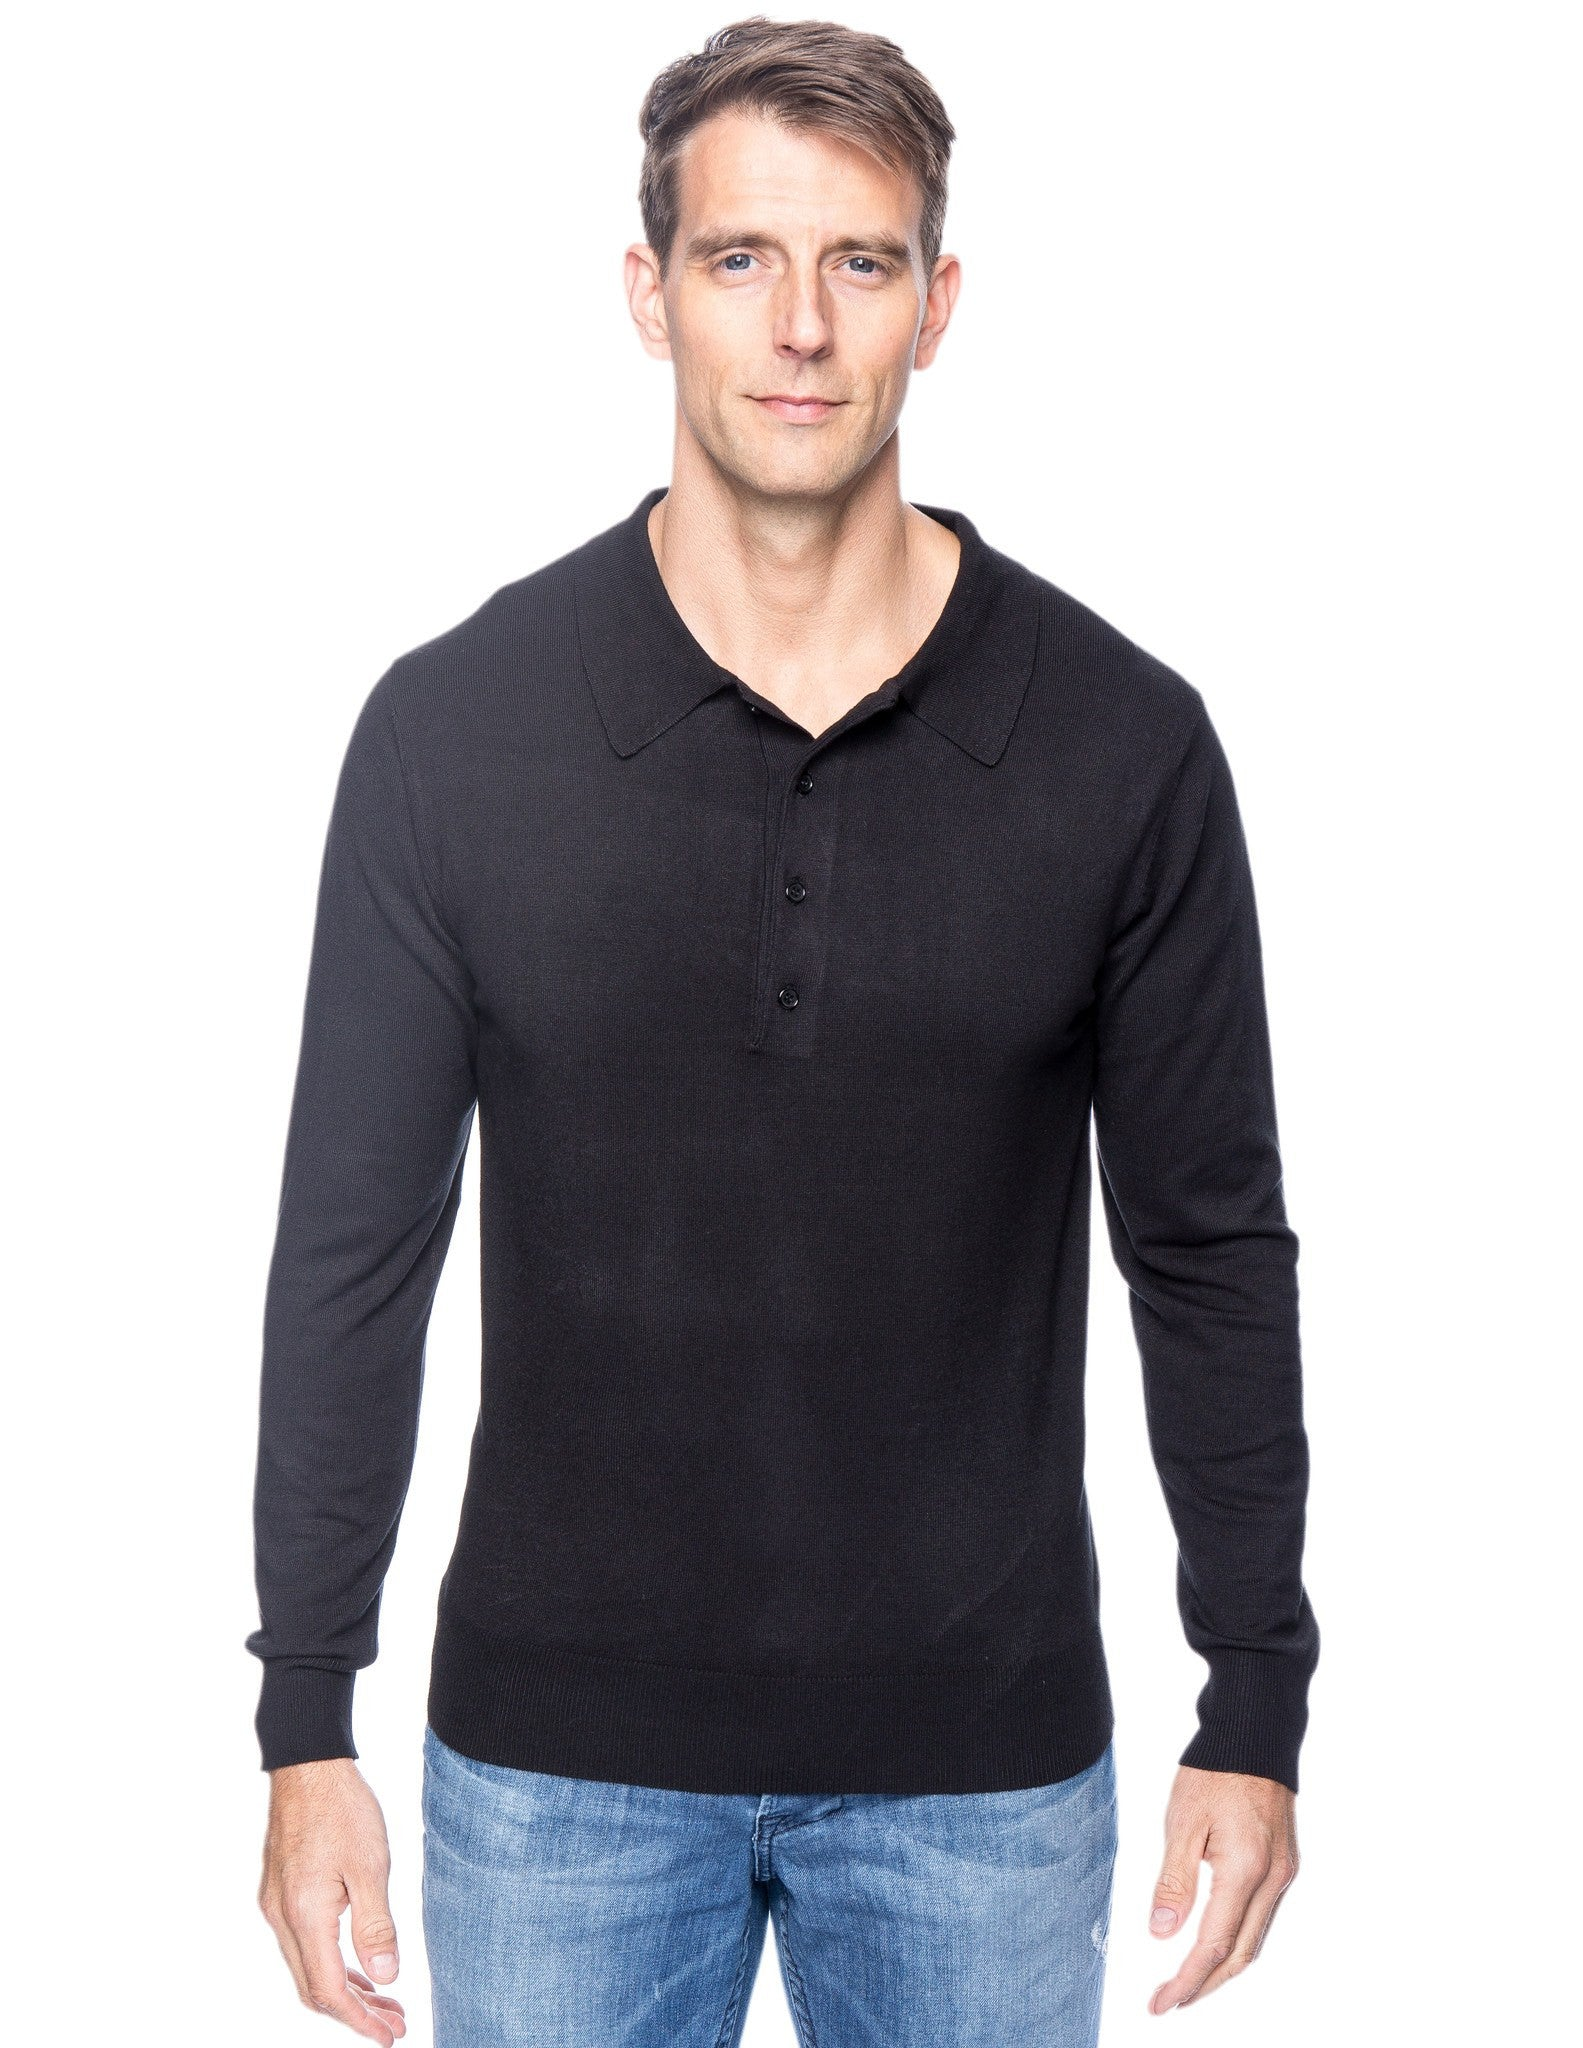 Tocco Reale Men's Classic Knit Long Sleeve Polo Sweater